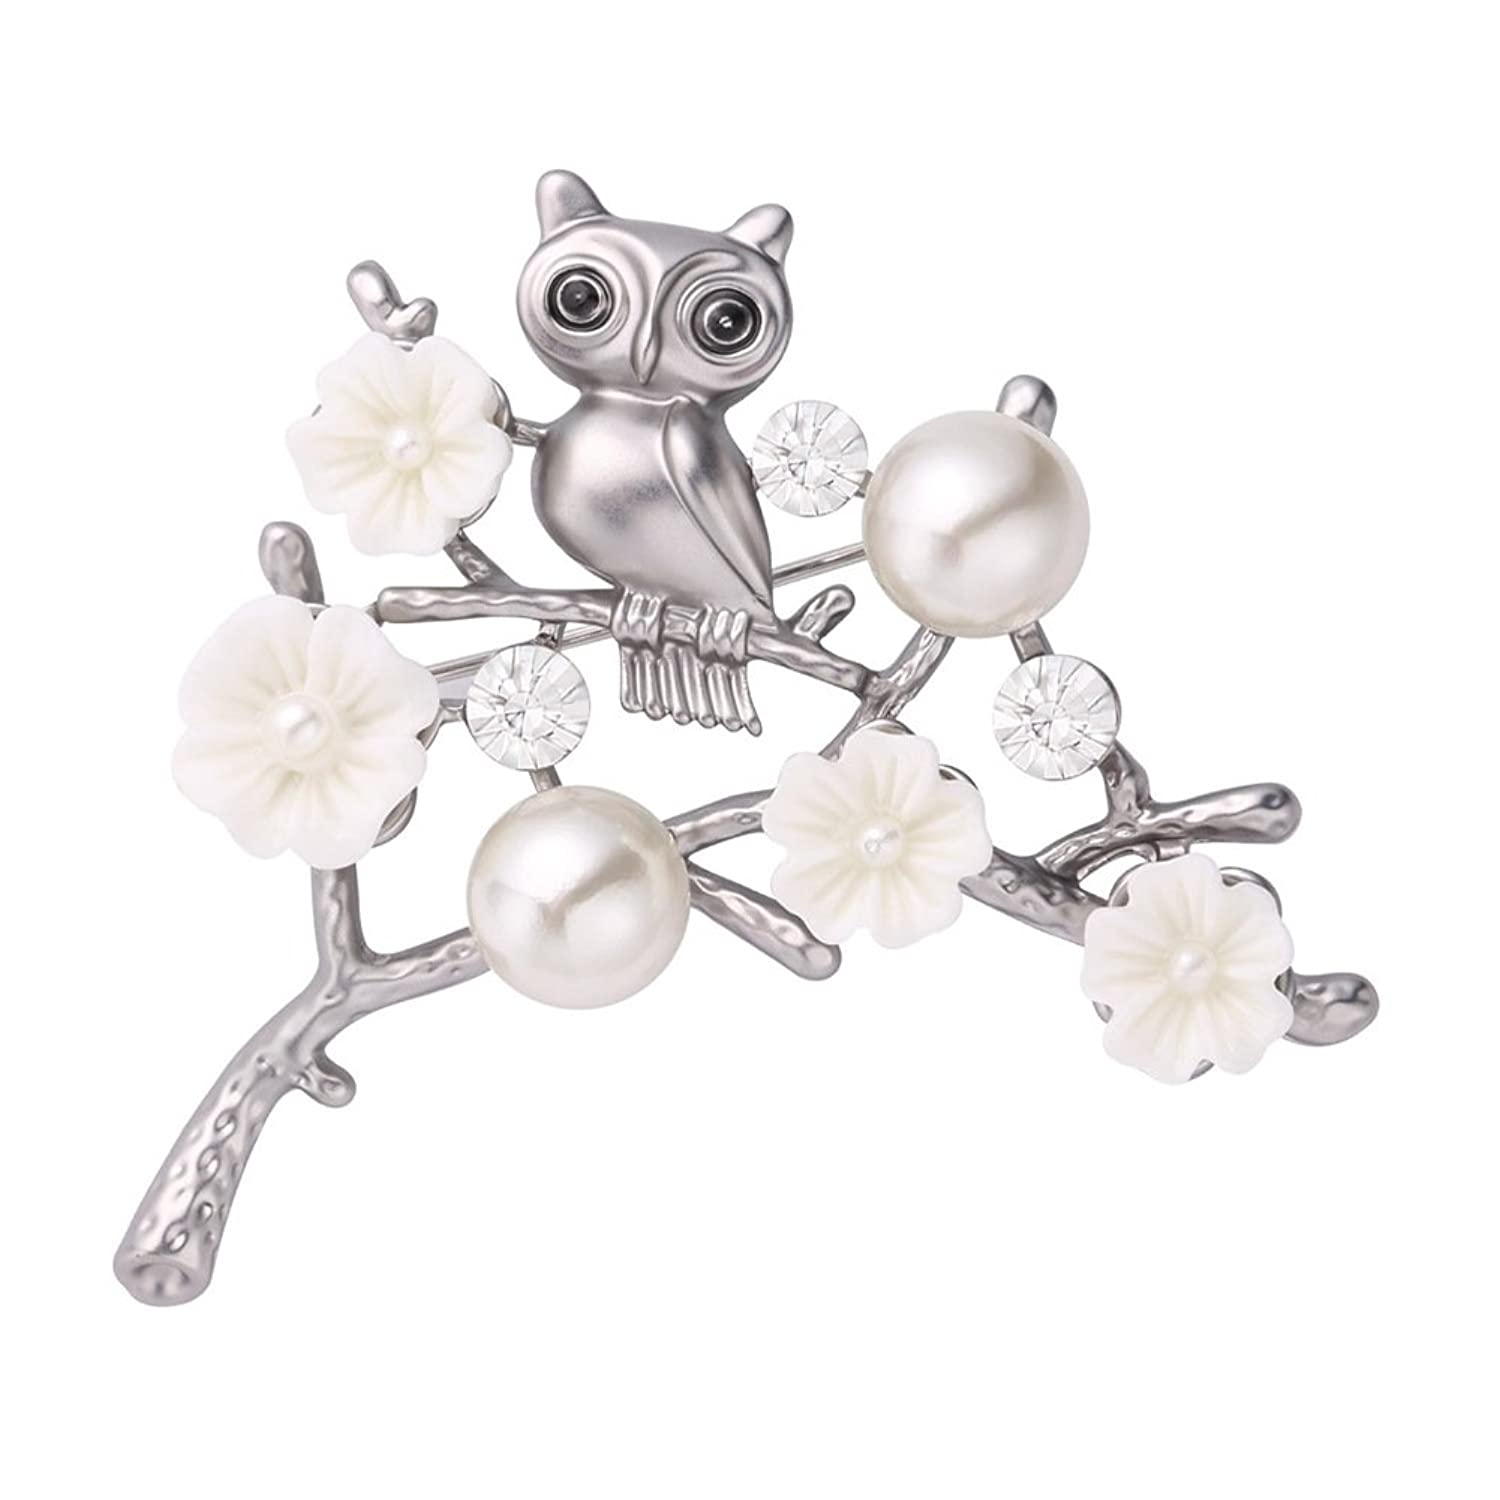 Brooch Bouquet Platinum Plated Bird Owls on Branch Scarf Clip Jewelry Pin Brooches for Women